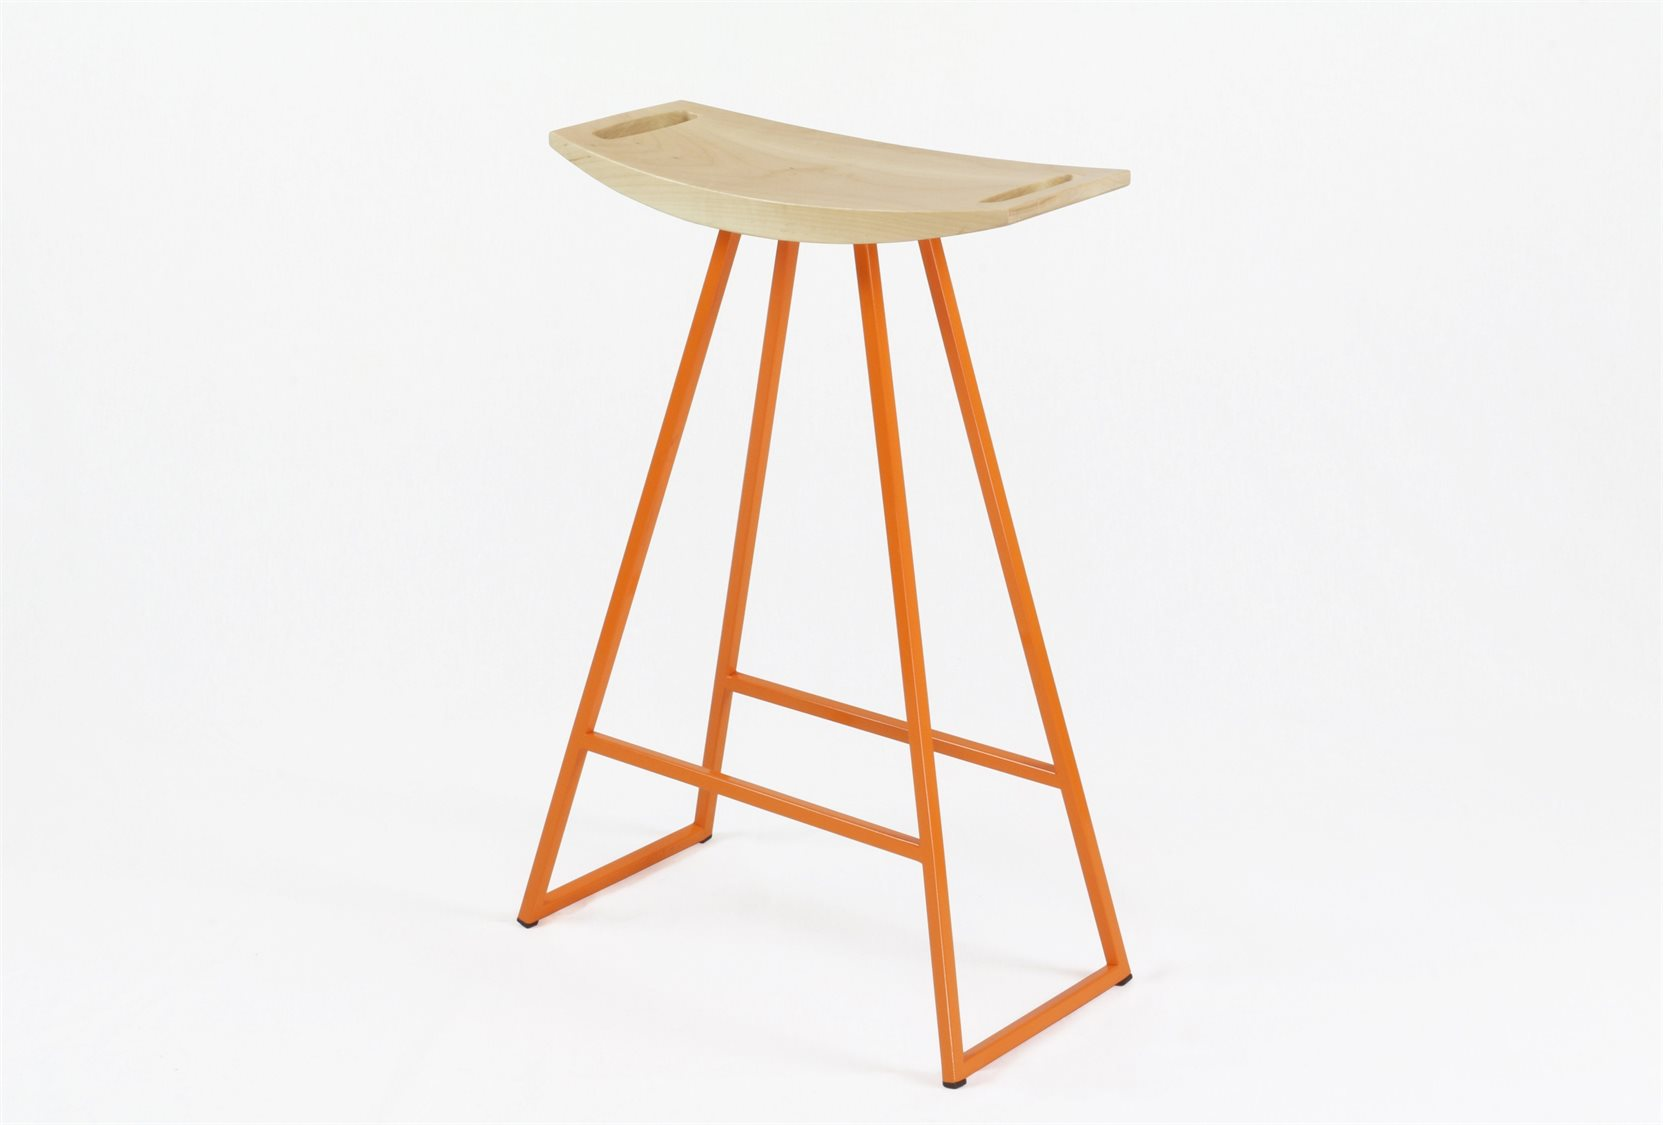 Brilliant Tronk Design Robert Maple Orange Side Counter Height Stool Bralicious Painted Fabric Chair Ideas Braliciousco